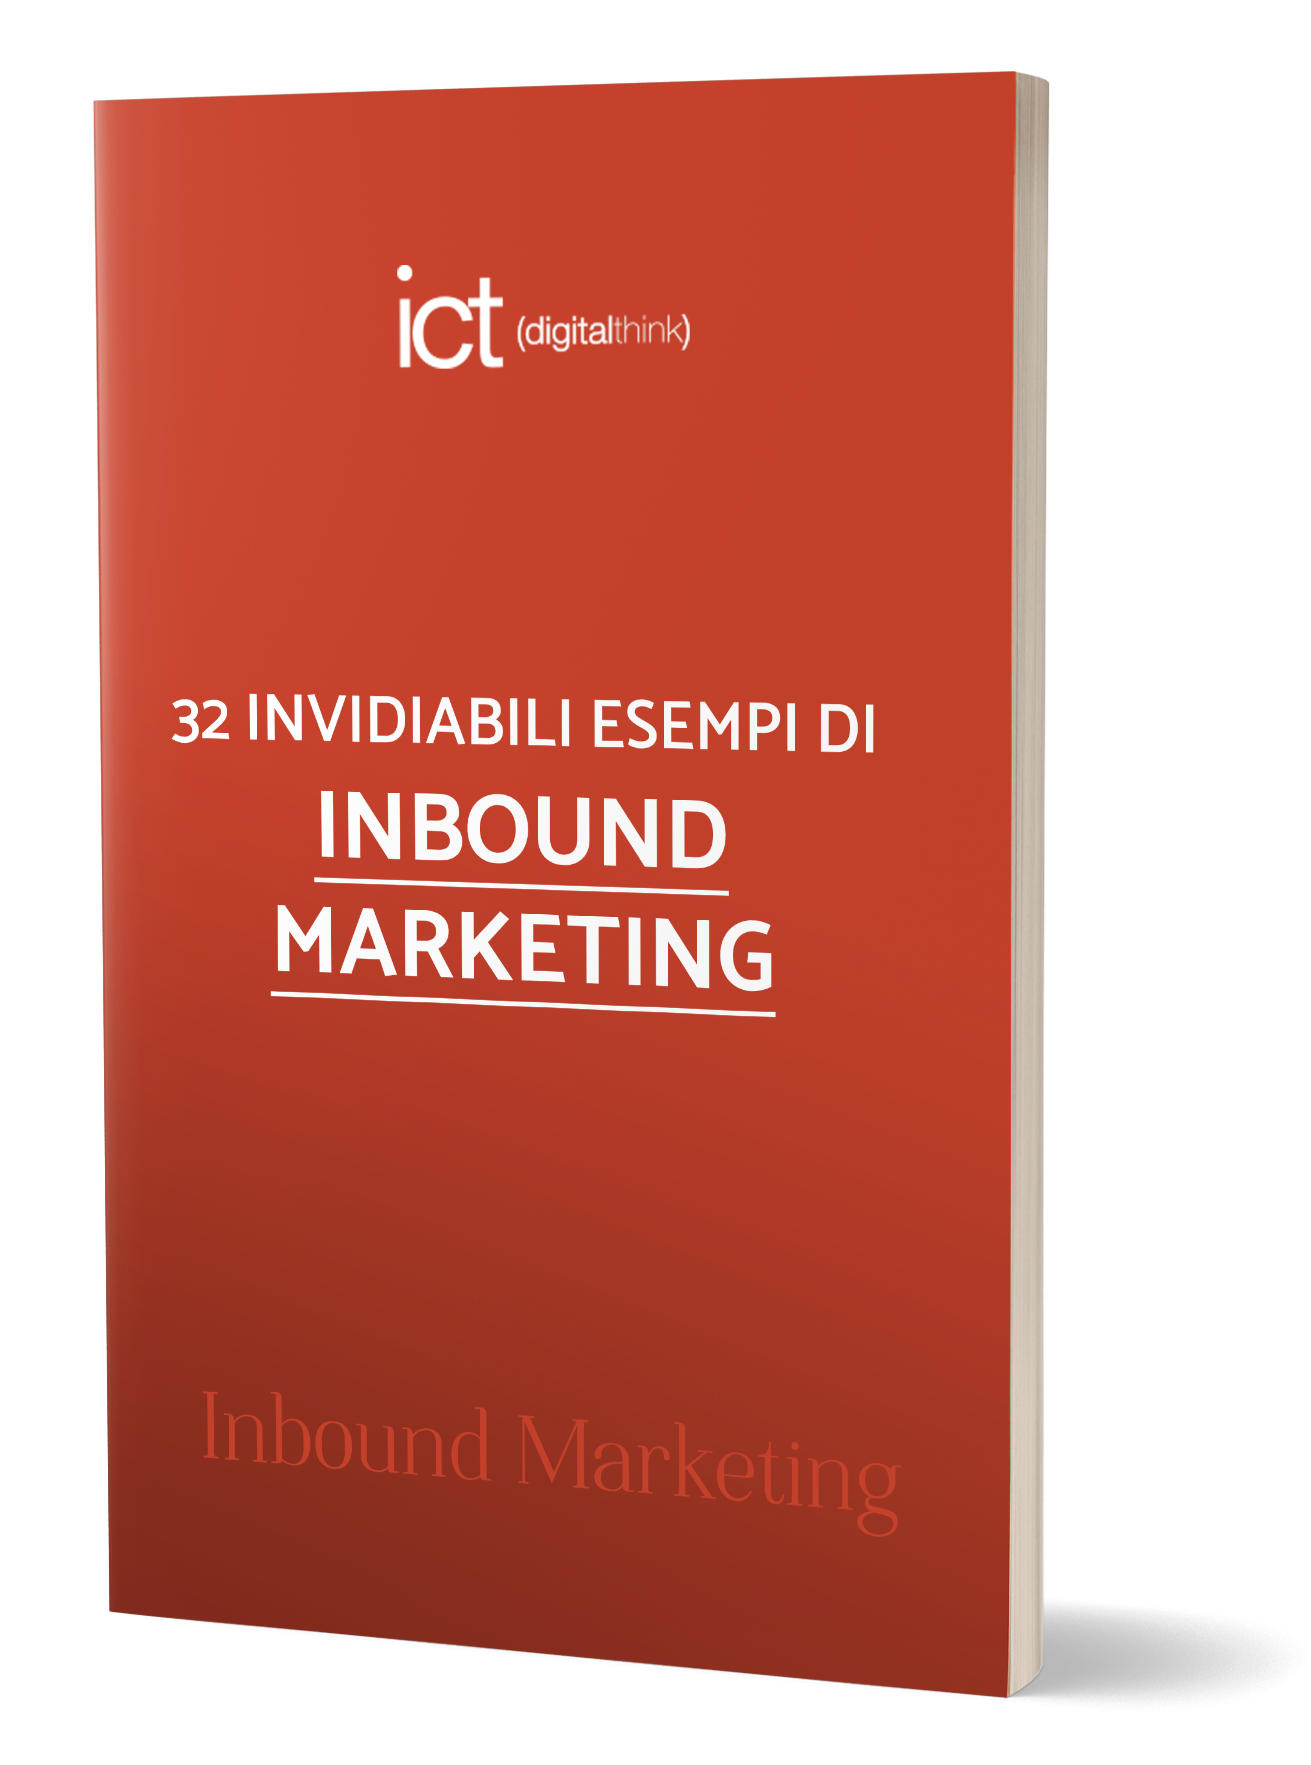 32-esempi-inbound-marketing-homepage.png